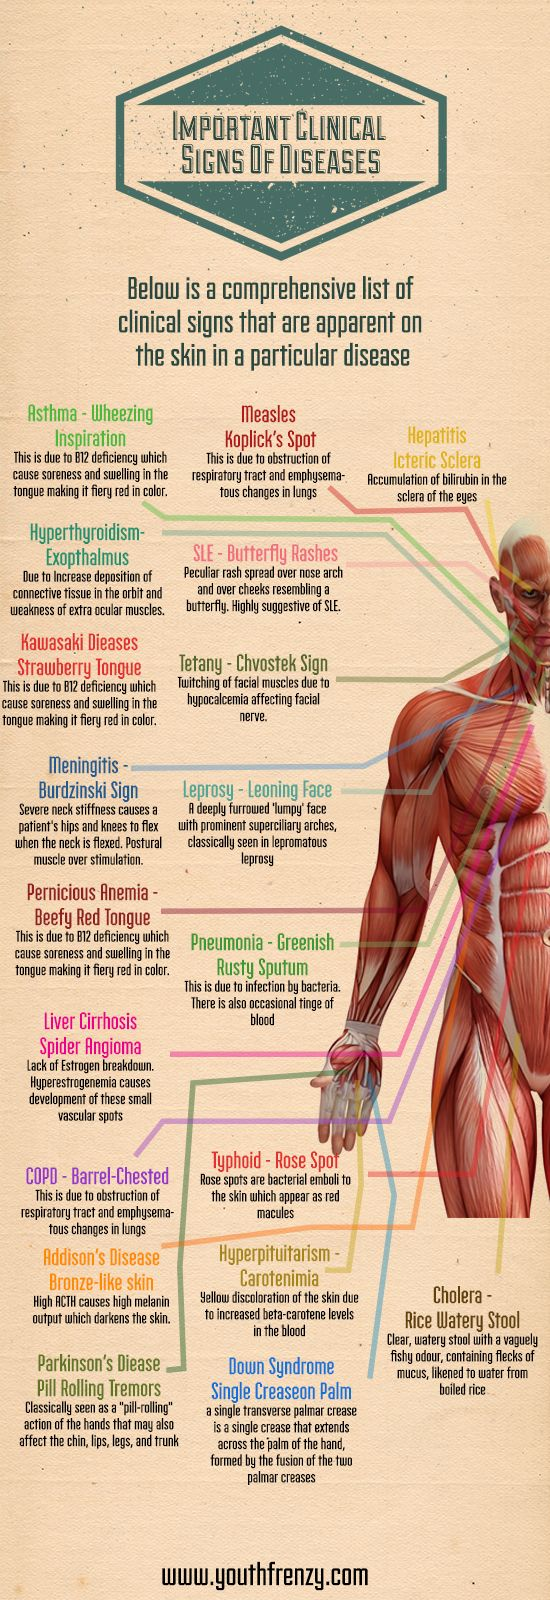 clinical signs of diseases apparent on skin surface.